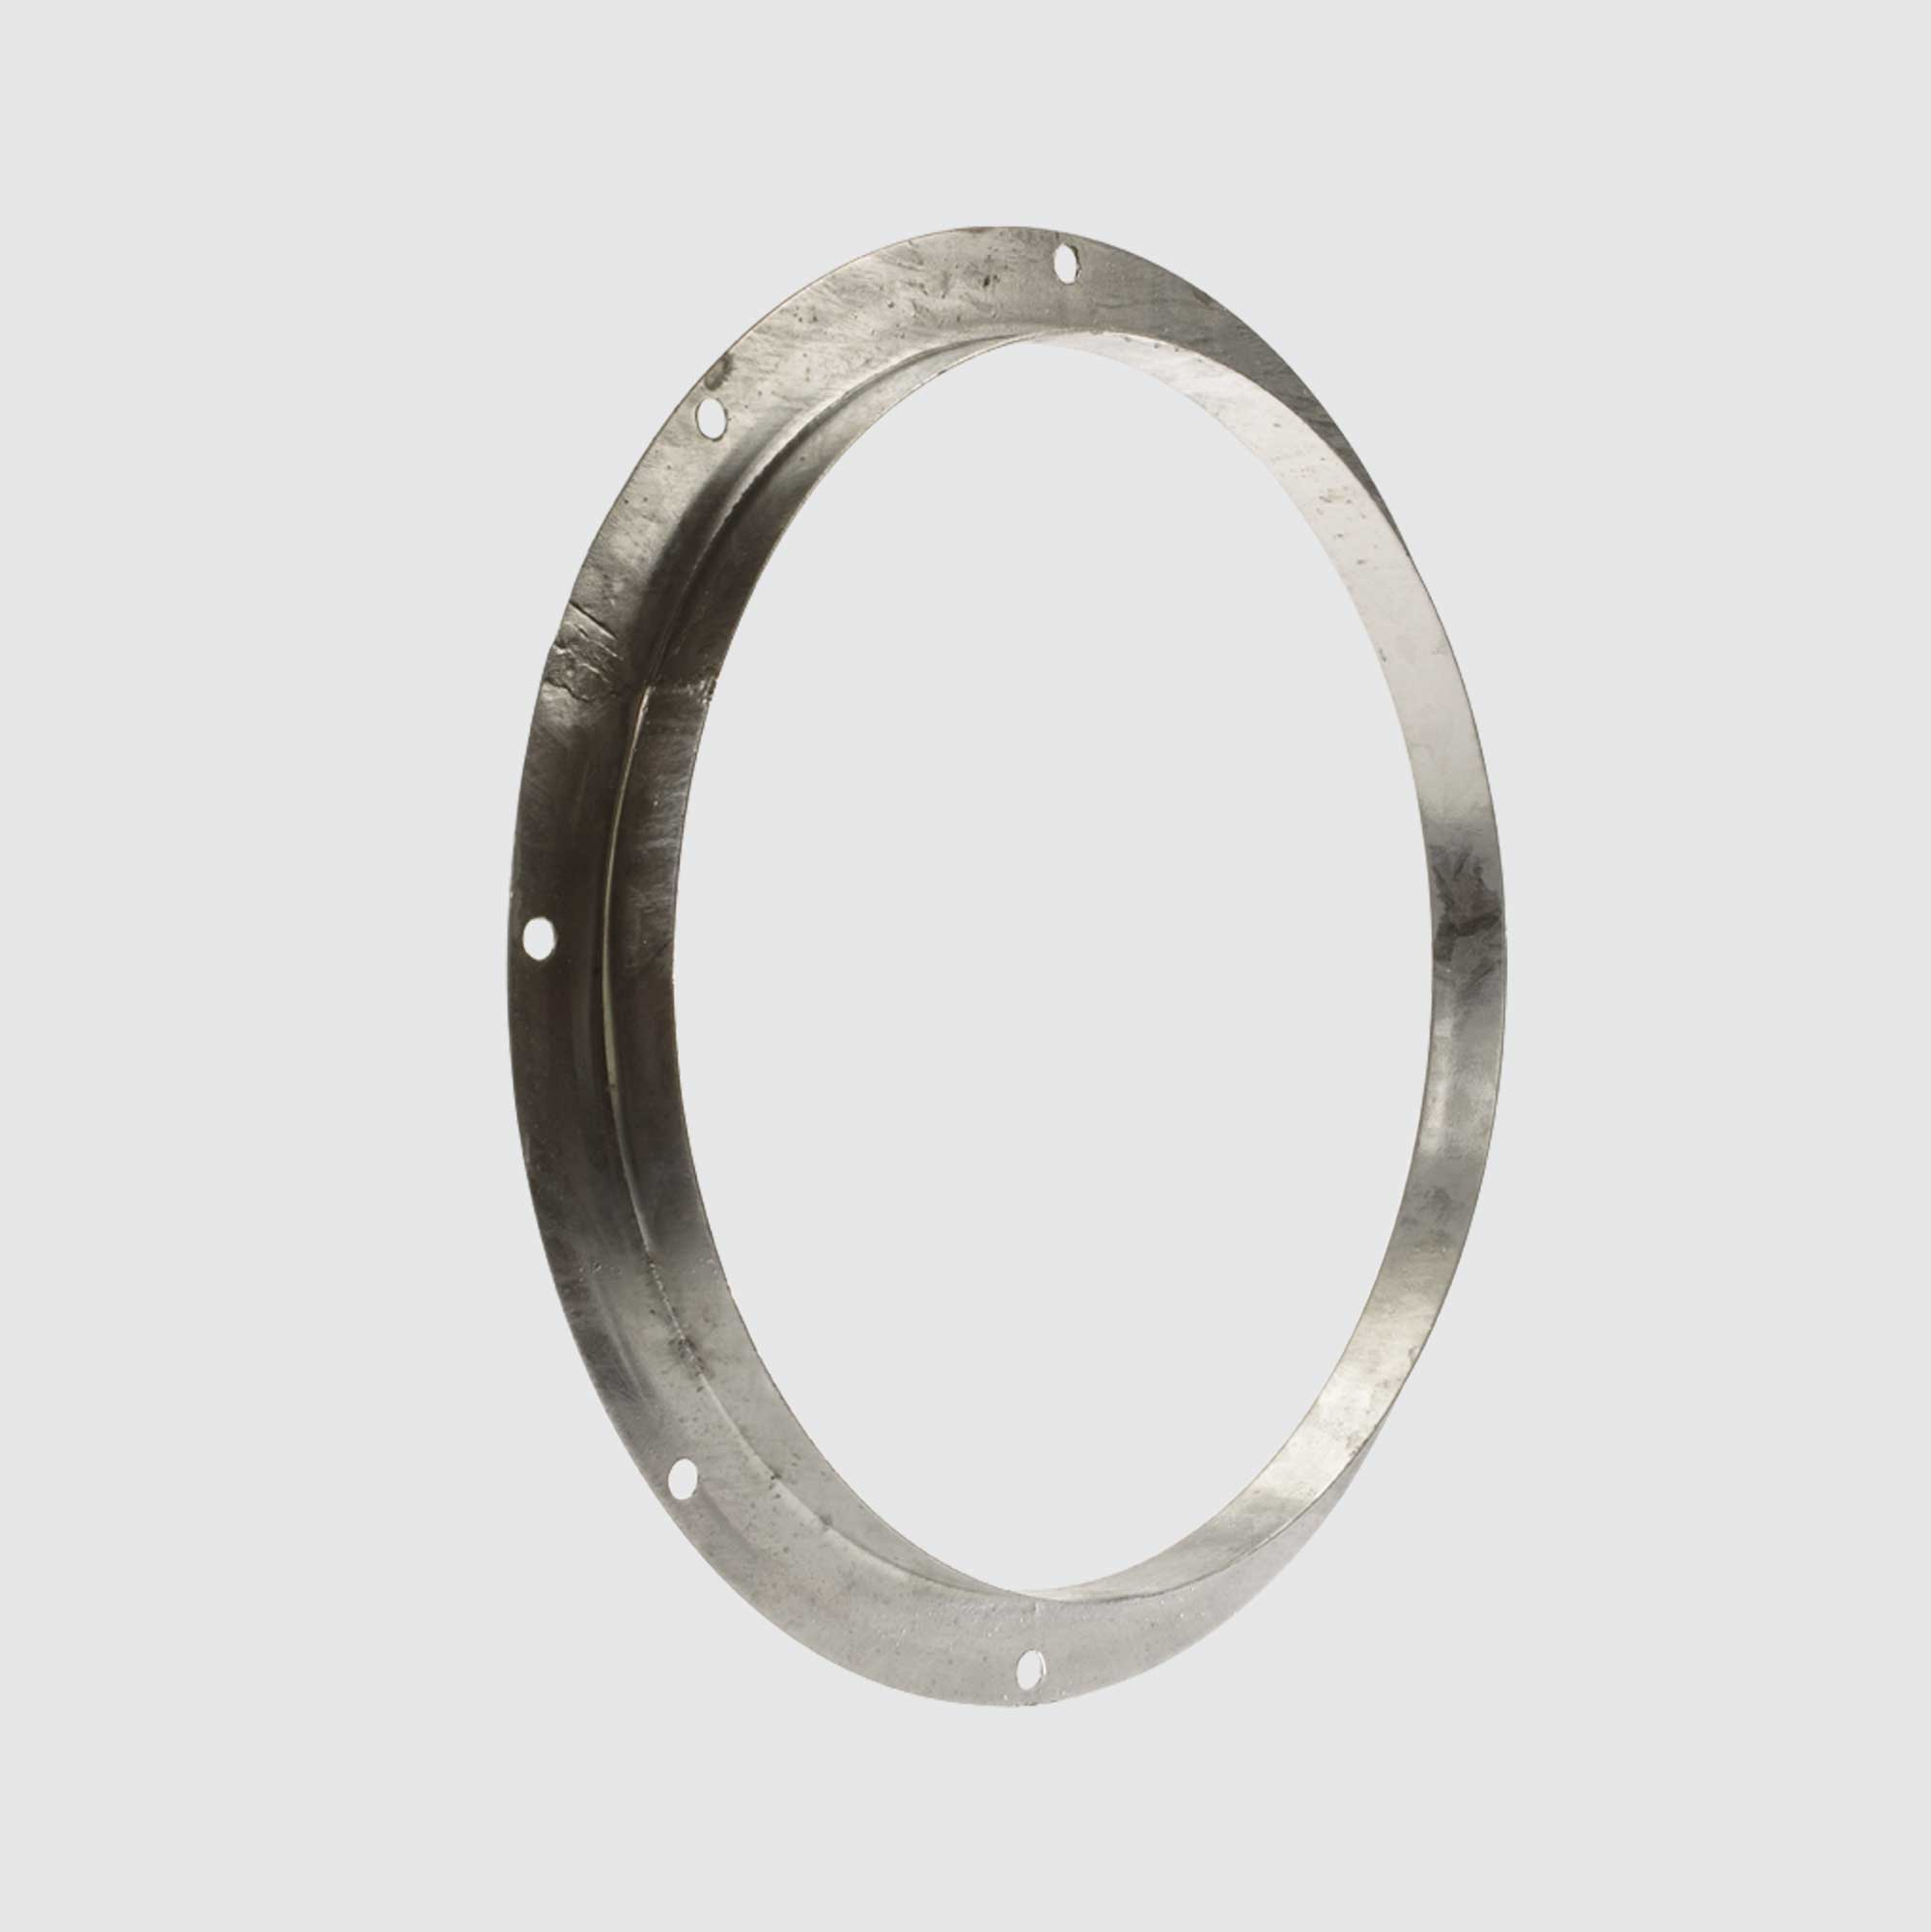 Duct products flange accessories